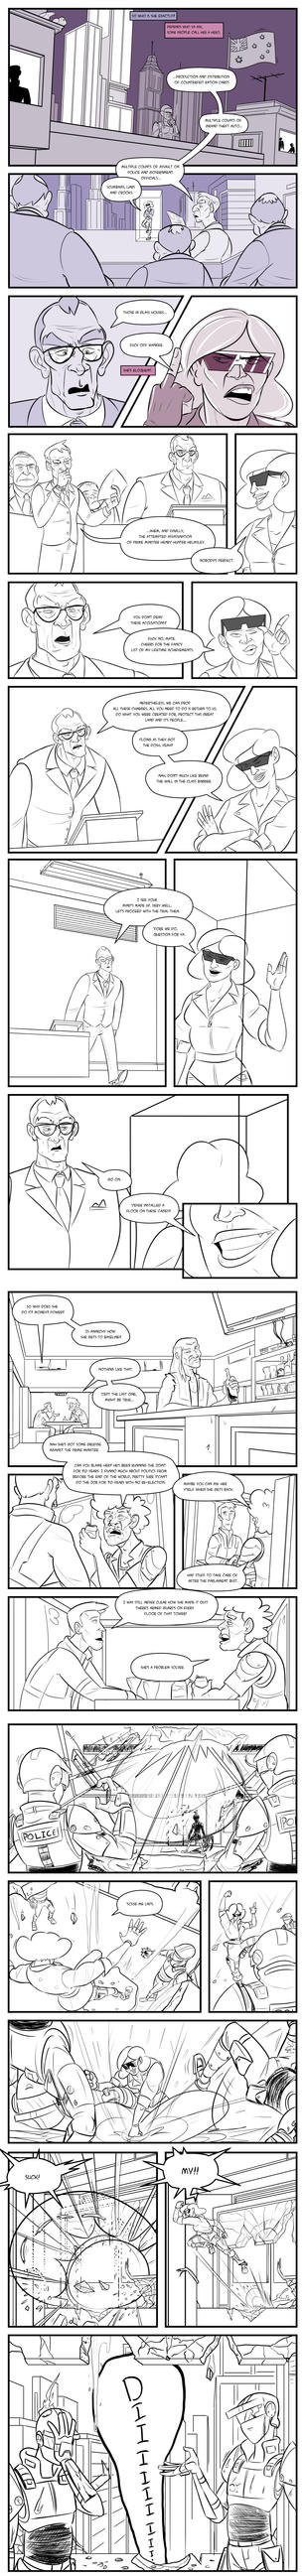 Second Draft OCT - Audition - Page 1 by Langry-The-First